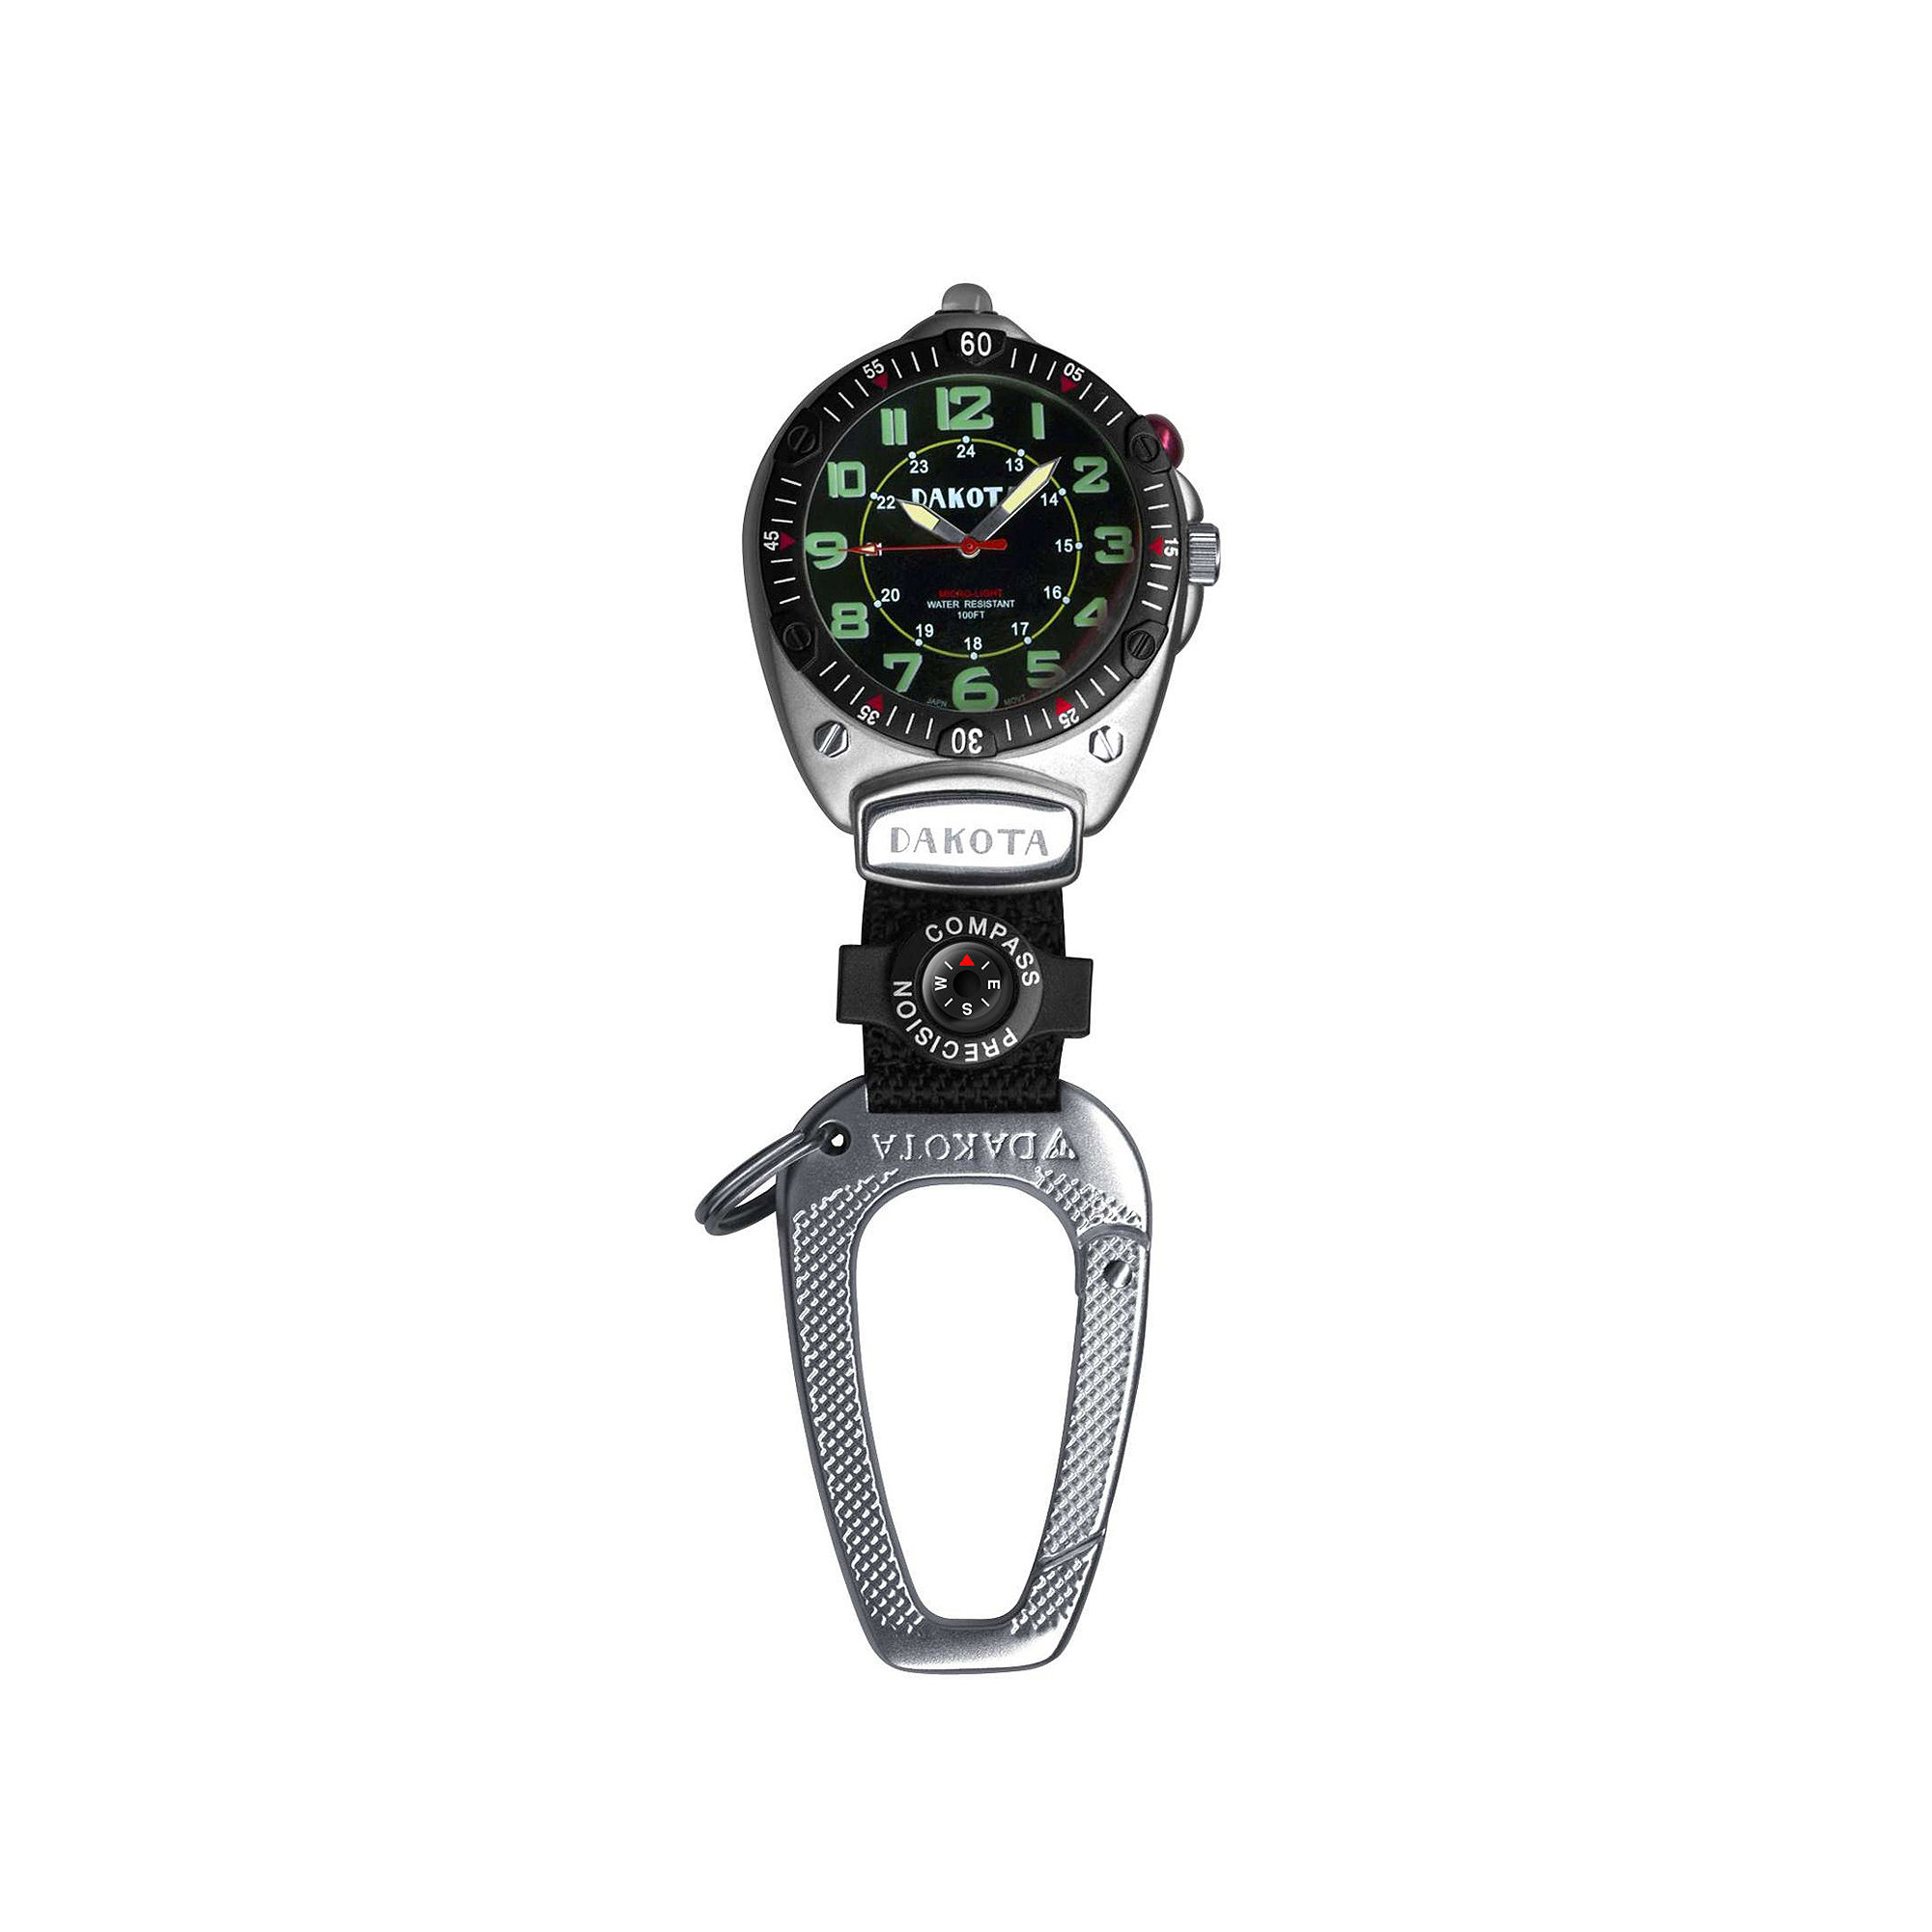 Dakota Big Face Carabiner Clip Watch, Black 88522